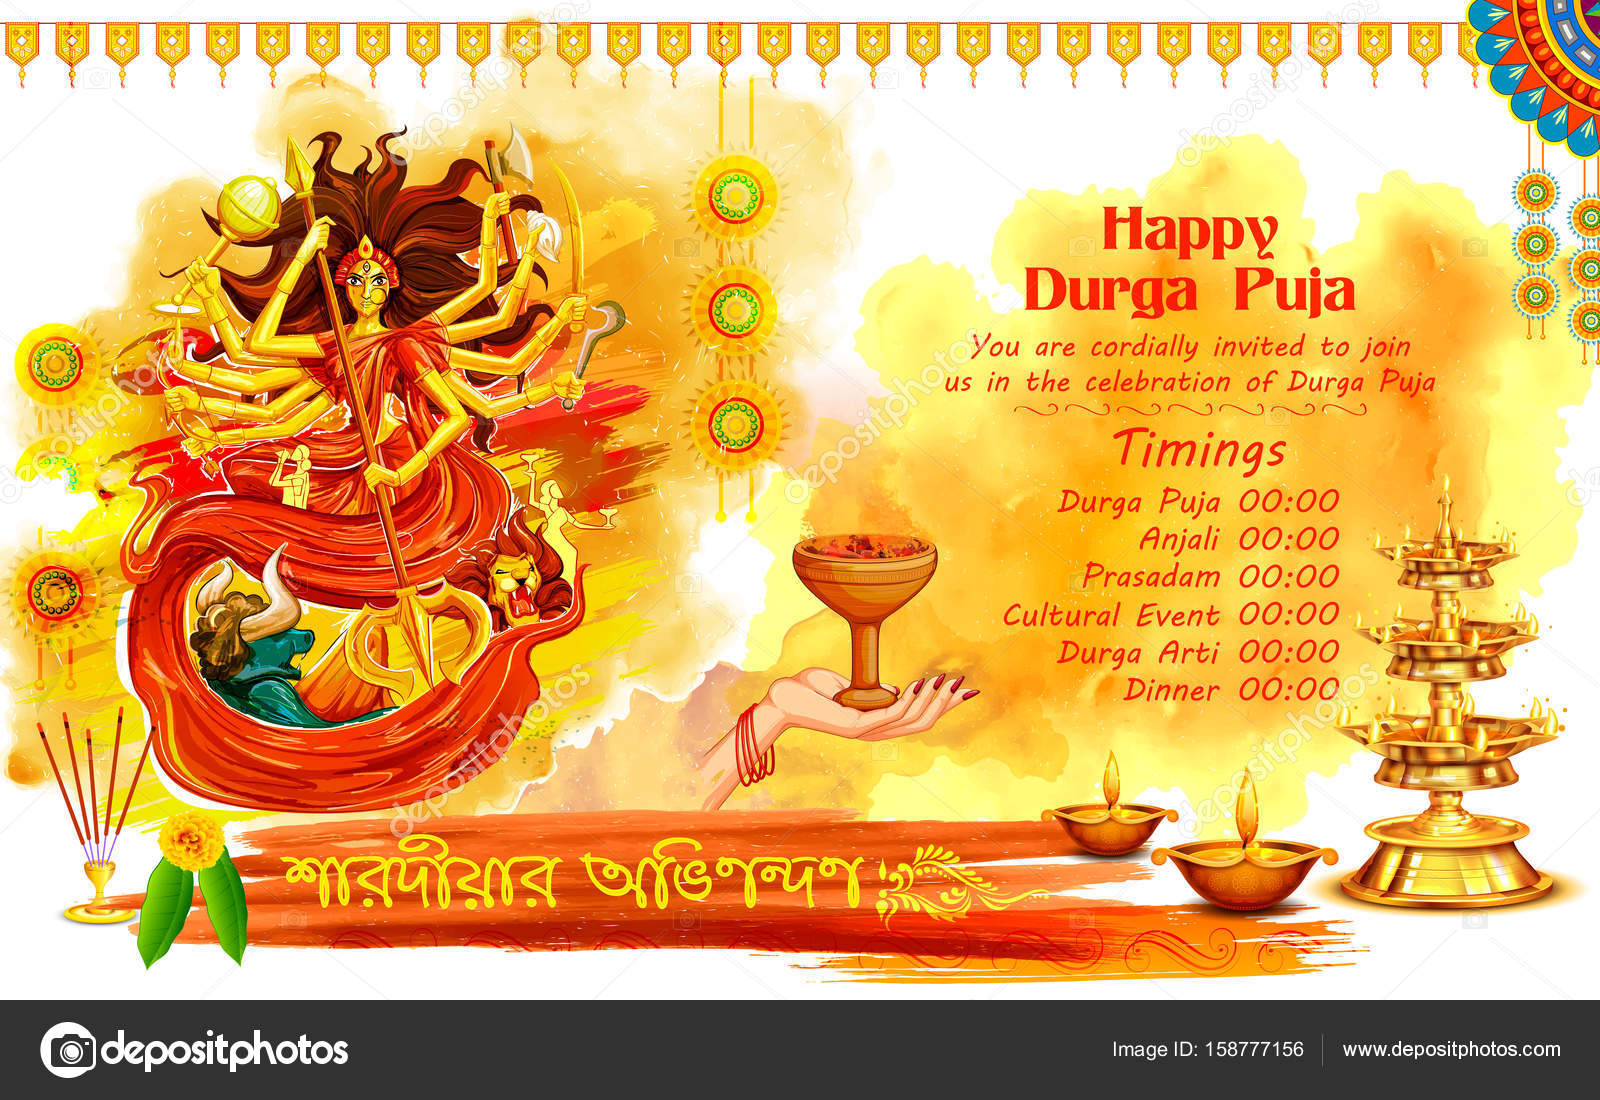 Goddess durga in happy dussehra background with bengali text goddess durga in happy dussehra background with bengali text sharodiya abhinandan meaning autumn greetings stock stopboris Choice Image